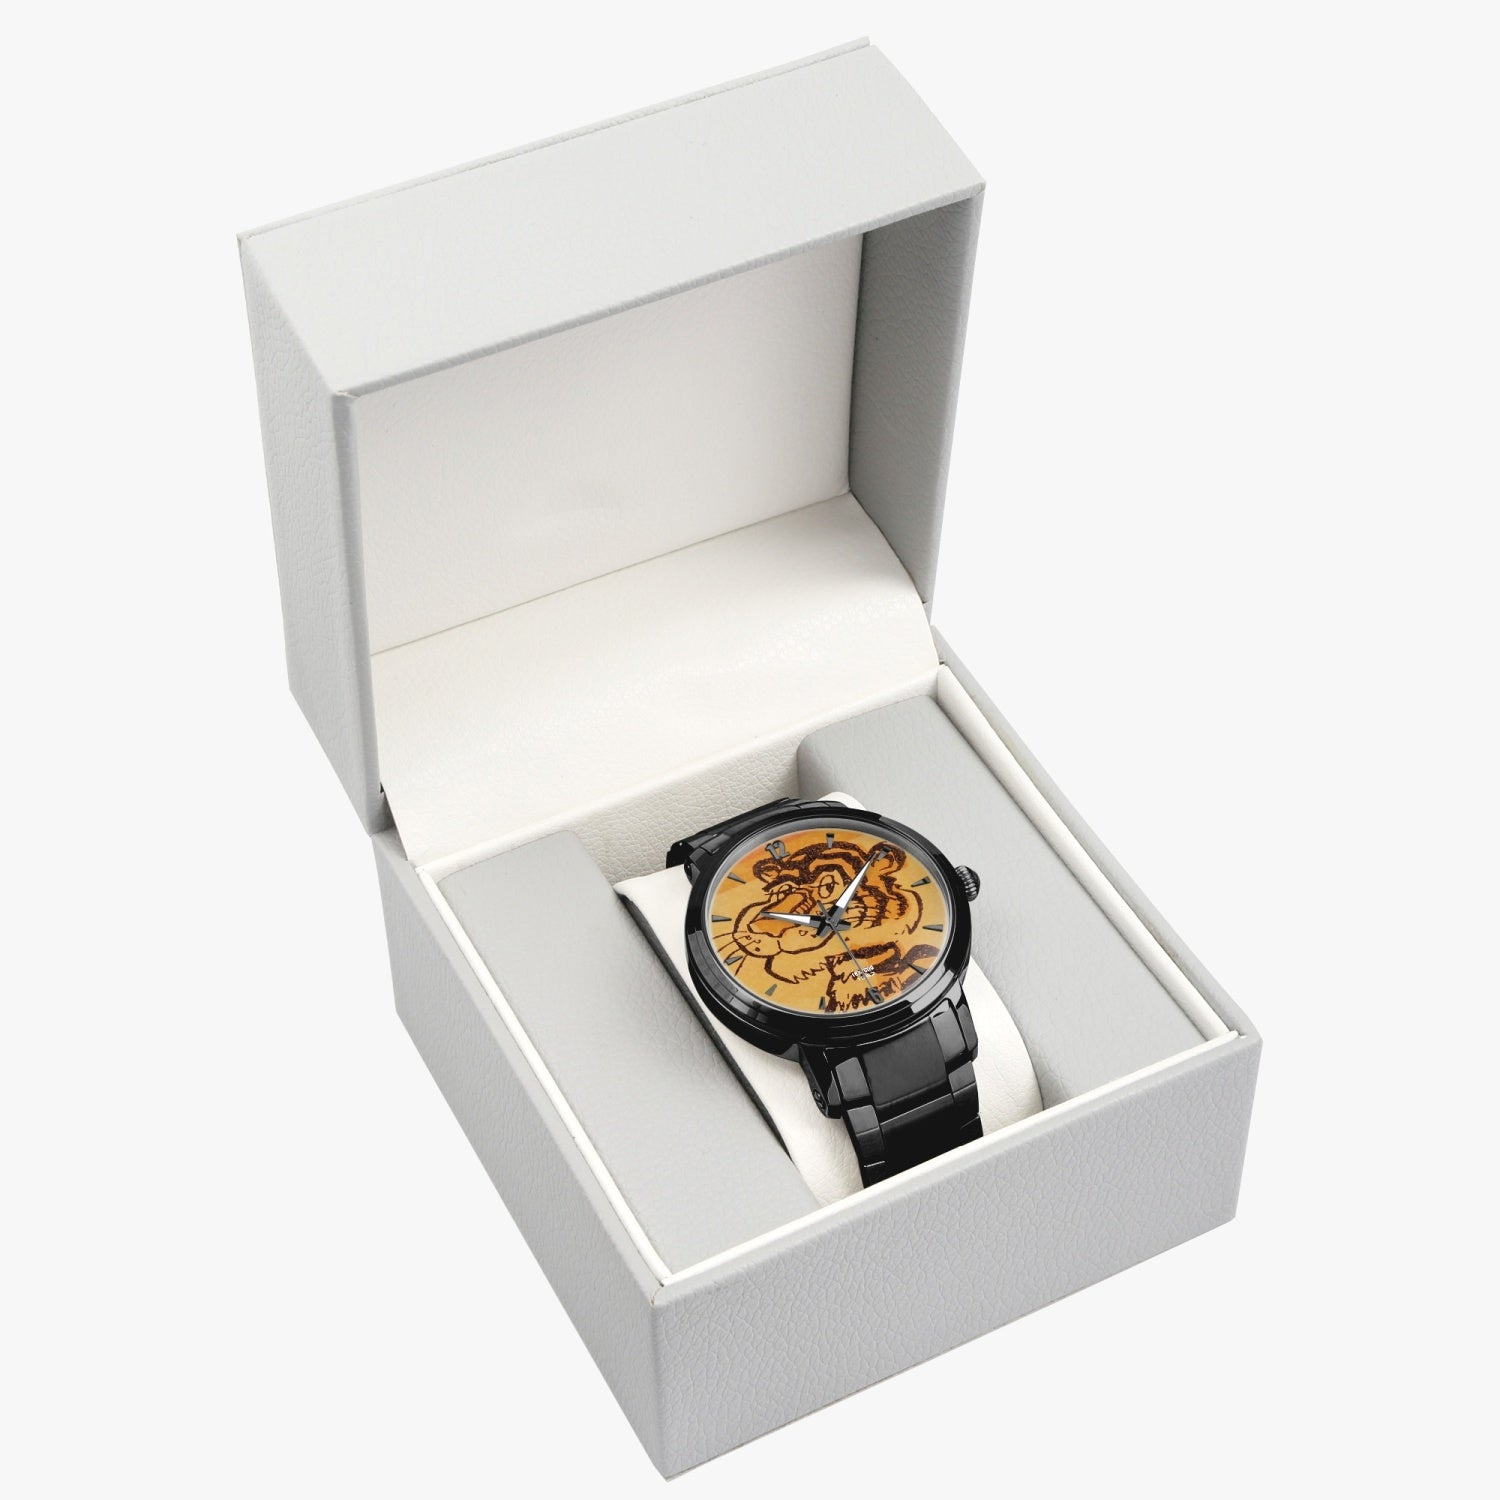 Unique sports gift watches